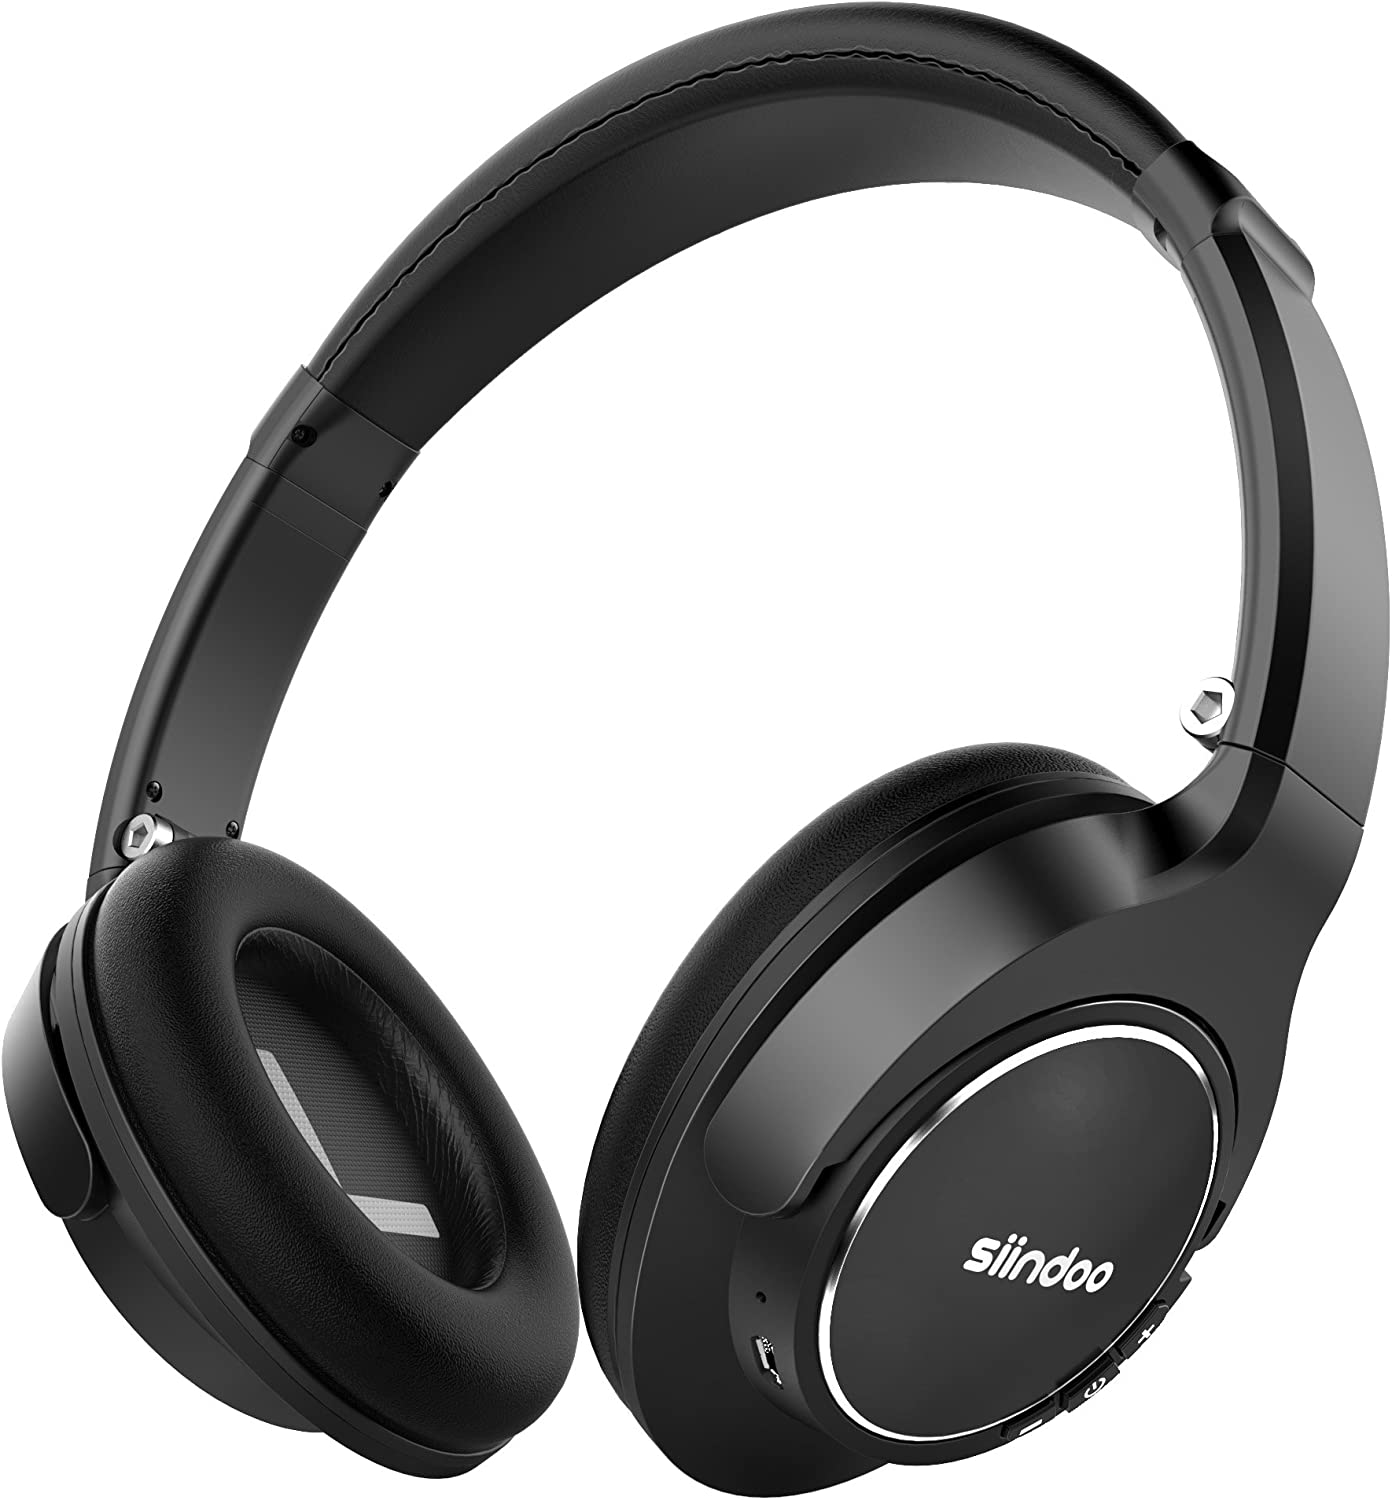 Siindoo JH-803 Bluetooth Over Ear Headphones, Wireless Headset with 20H Playback, HiFi Sound and Protein Ear Muffs Comfortable Headphones w/Mic Compatible with Smartphone/Tablets/Desktop (Black)